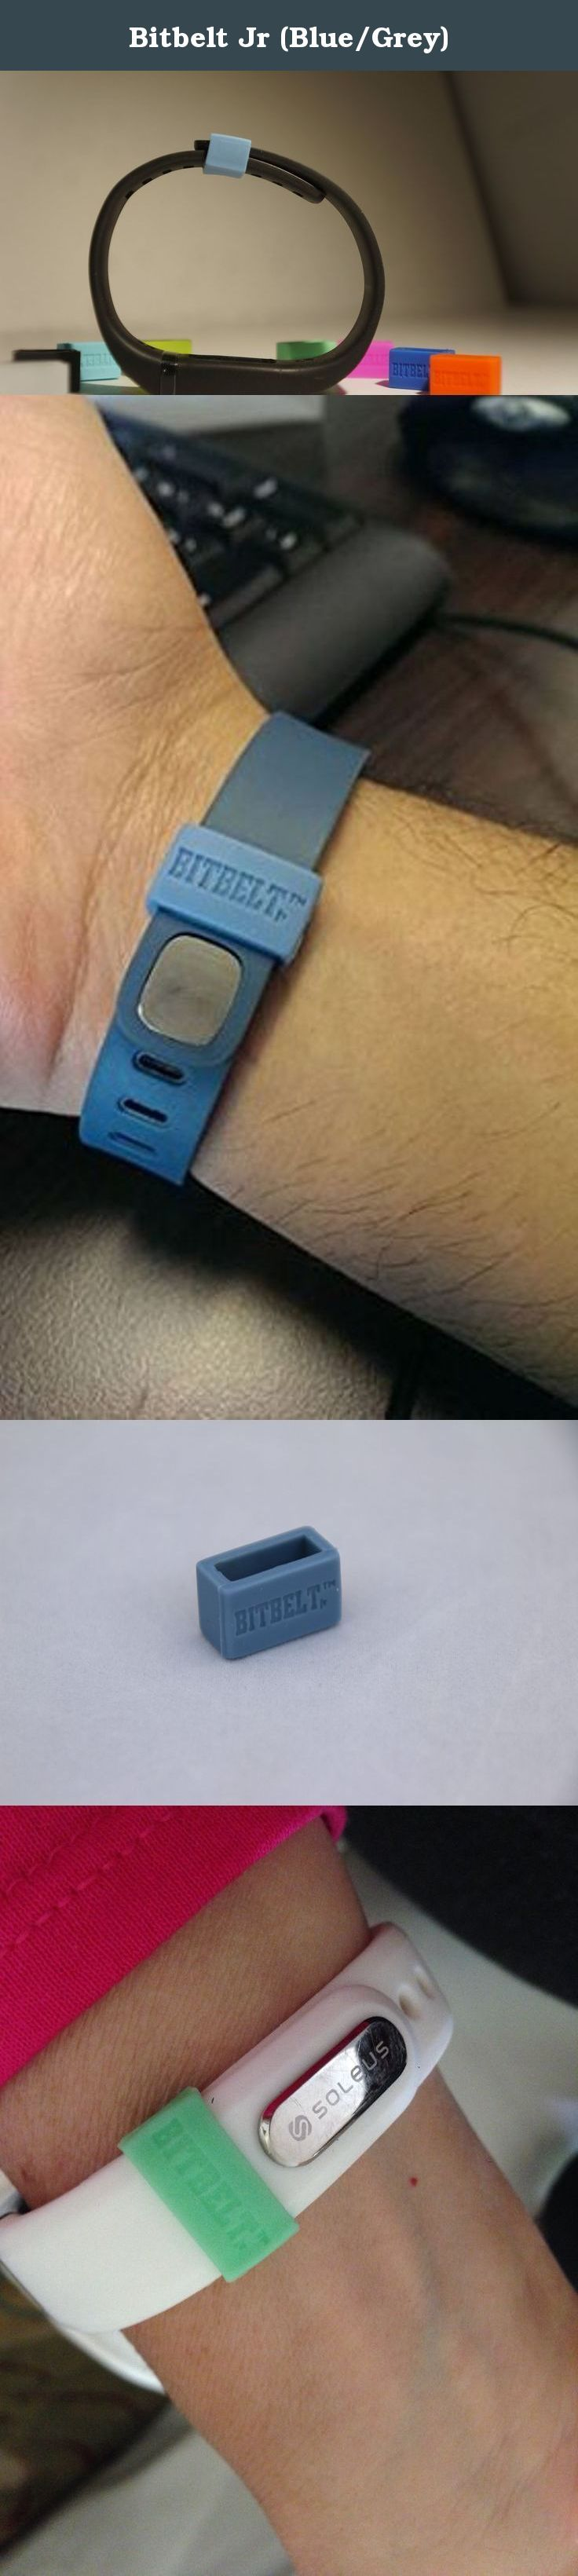 Bitbelt Jr (Blue/Grey). BITBELT JR CREATED TO PROTECT YOUR THINNER WIDTH WRIST WORN FITNESS TRACKER AND CHILD SIZE MAGIC BAND. DONT RELY ON A SMALL PLASTIC CLIP TO SECURE YOUR INVESTMENT TO HEALTH OR YOUR VACATION.WE ARE THE CHEAPEST INSURANCE AVAILABLE. Your bracelet will come unclasped. We are the cheapest insurance available to keep yours from being lost.